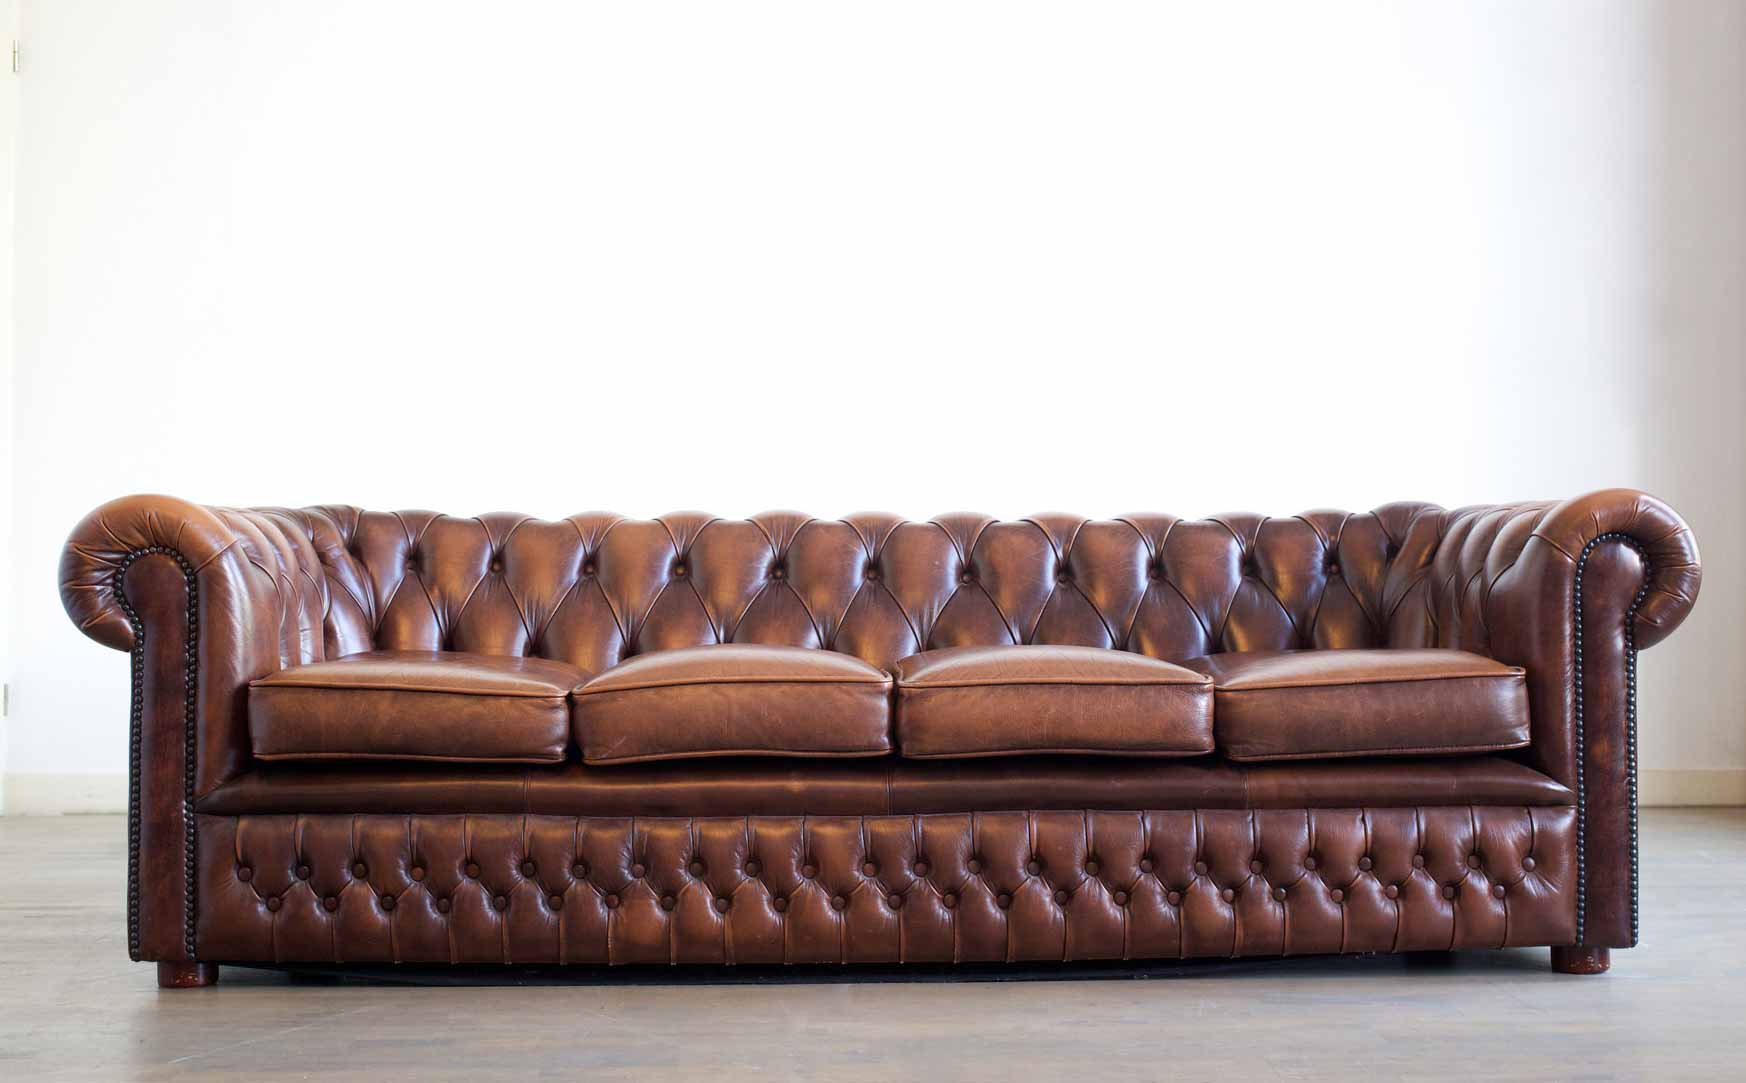 Chesterfield four seater sofa